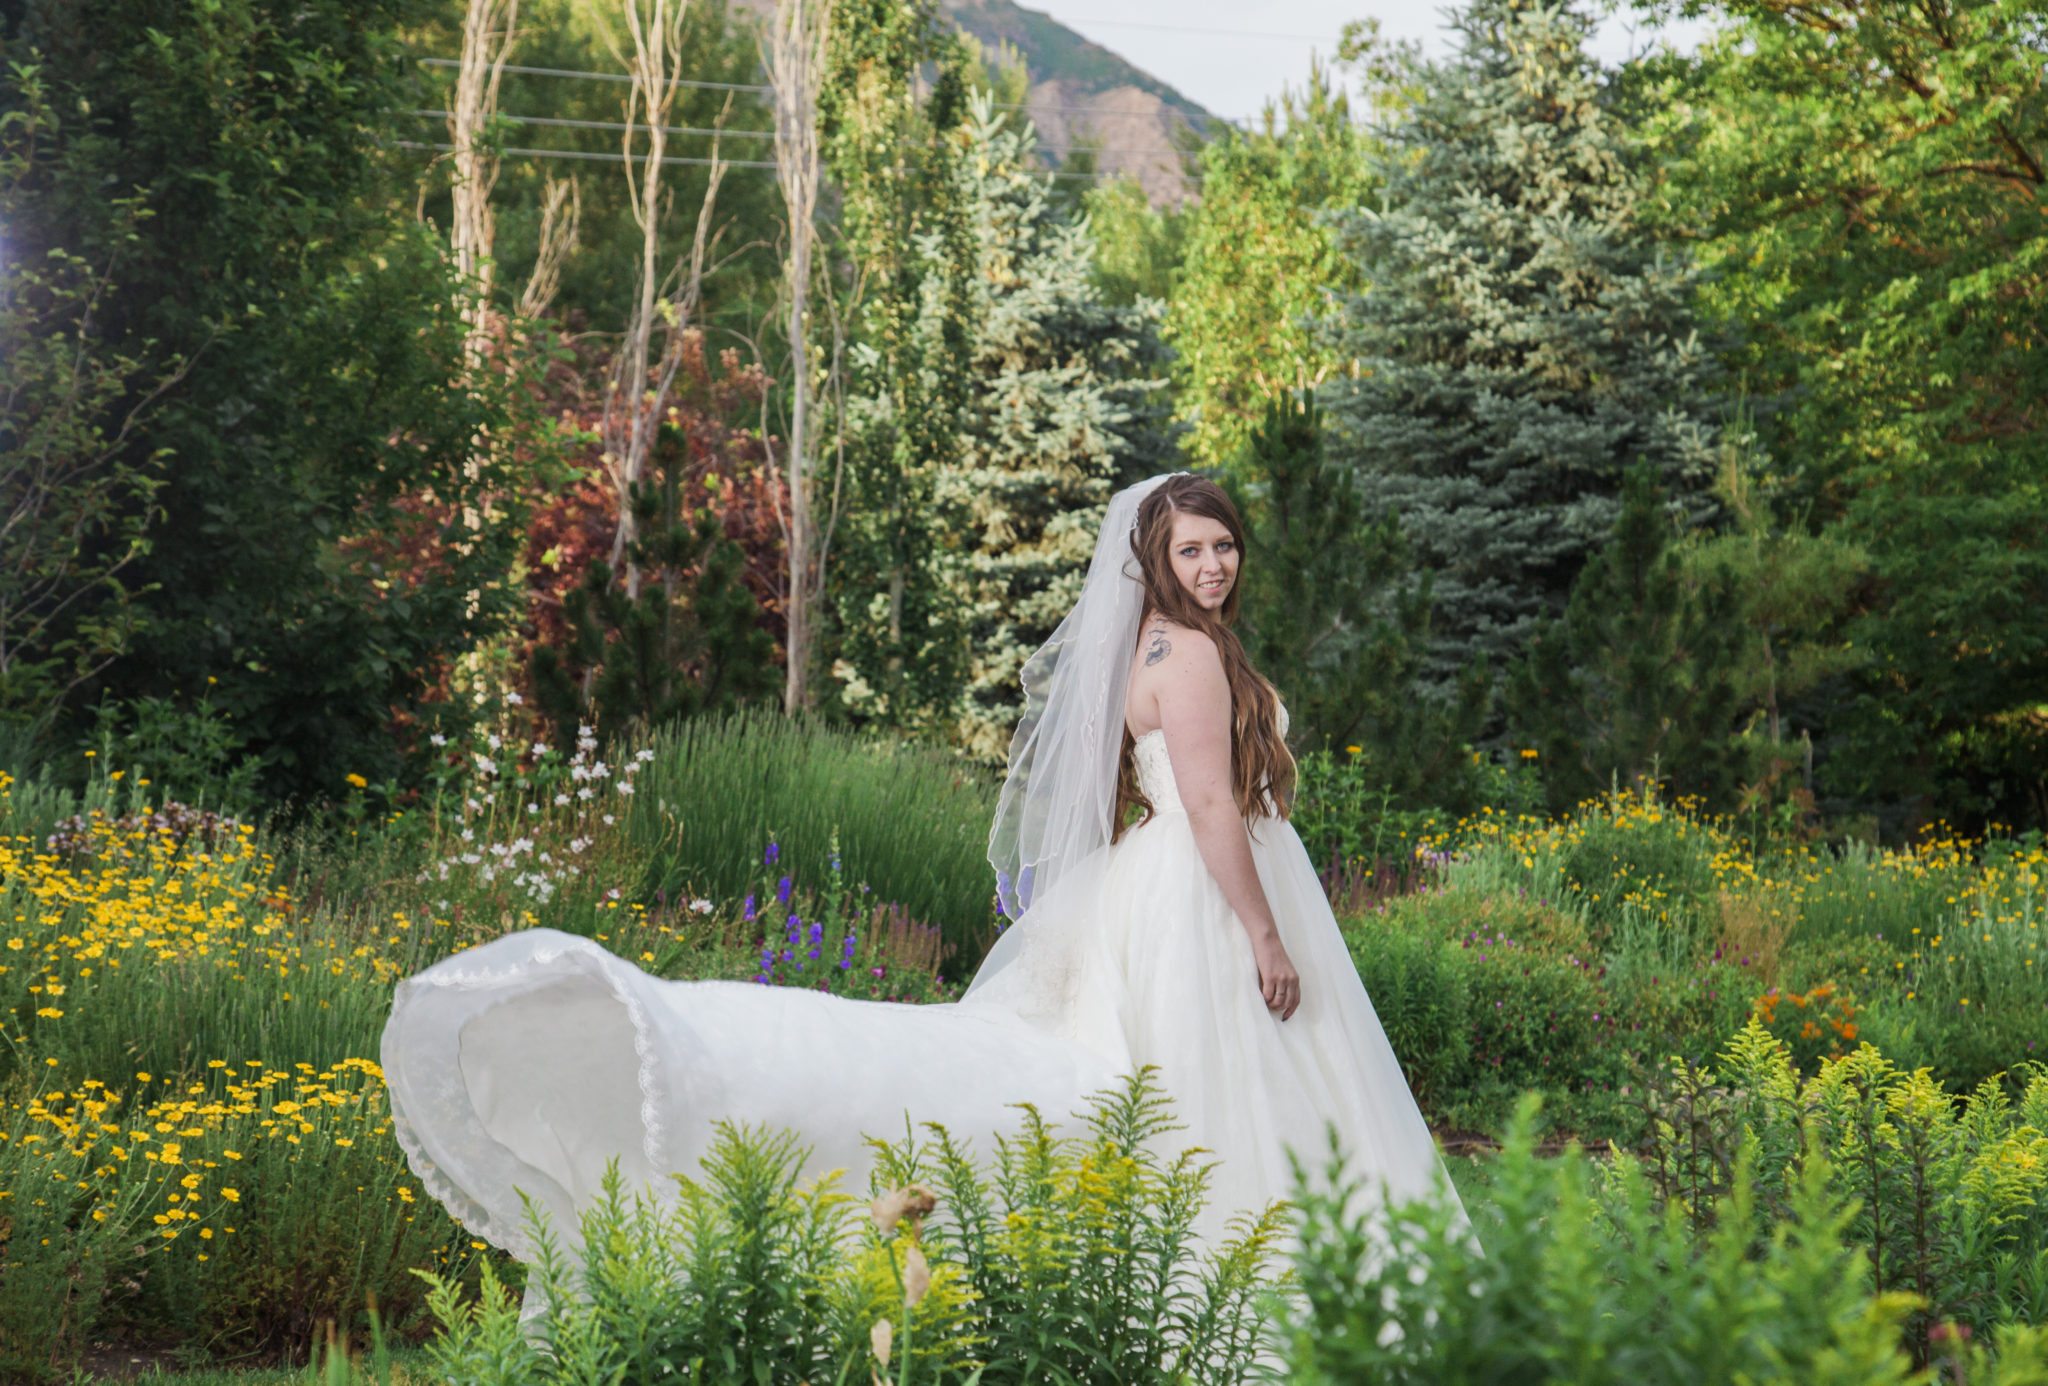 Bridal photo shoot with Abbie Ogden Botanical garden